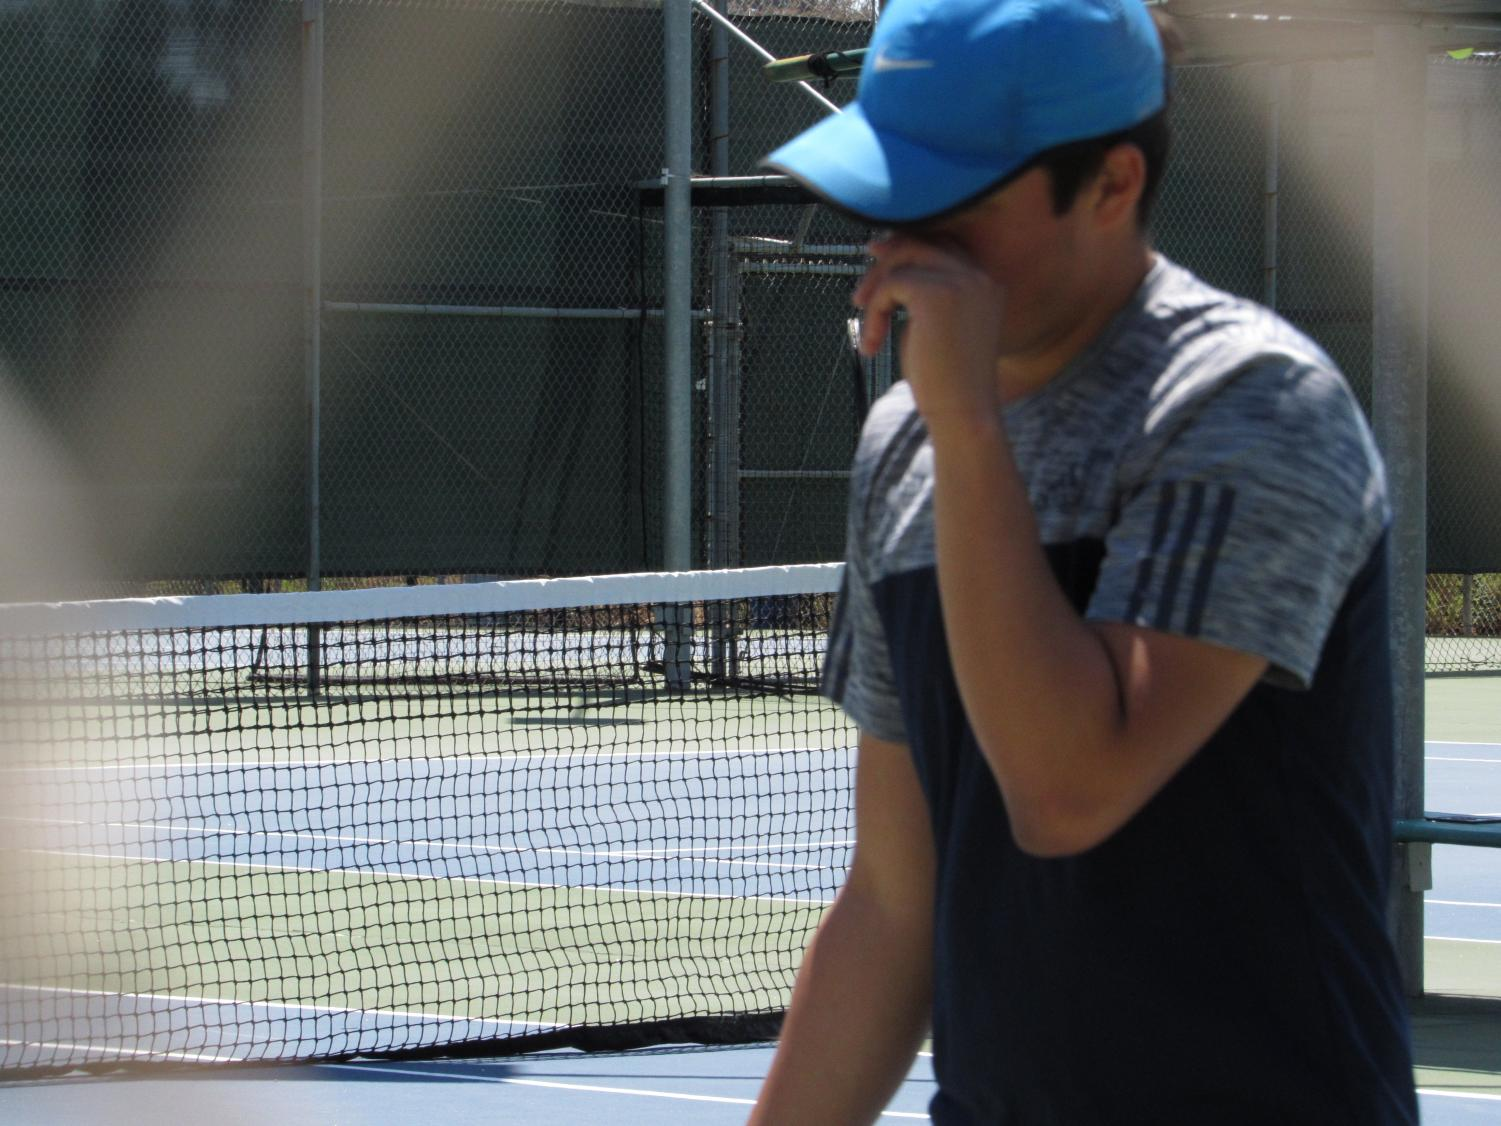 Senior Eduardo Rosario lowers his head, almost in defeat, of opposing team Francis Parker. They would go on to lose the match with a final score of 6-2.